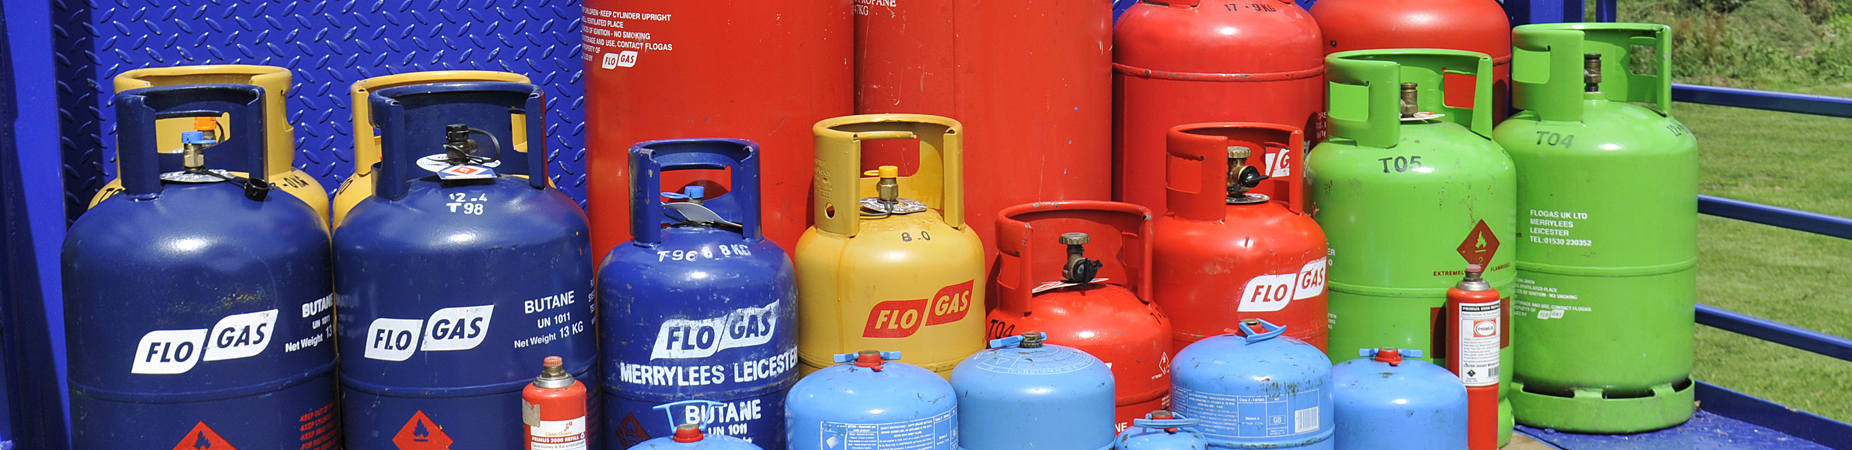 bottles of butane and propane gas - buy online from GSS Gas at www.gssgas.co.uk